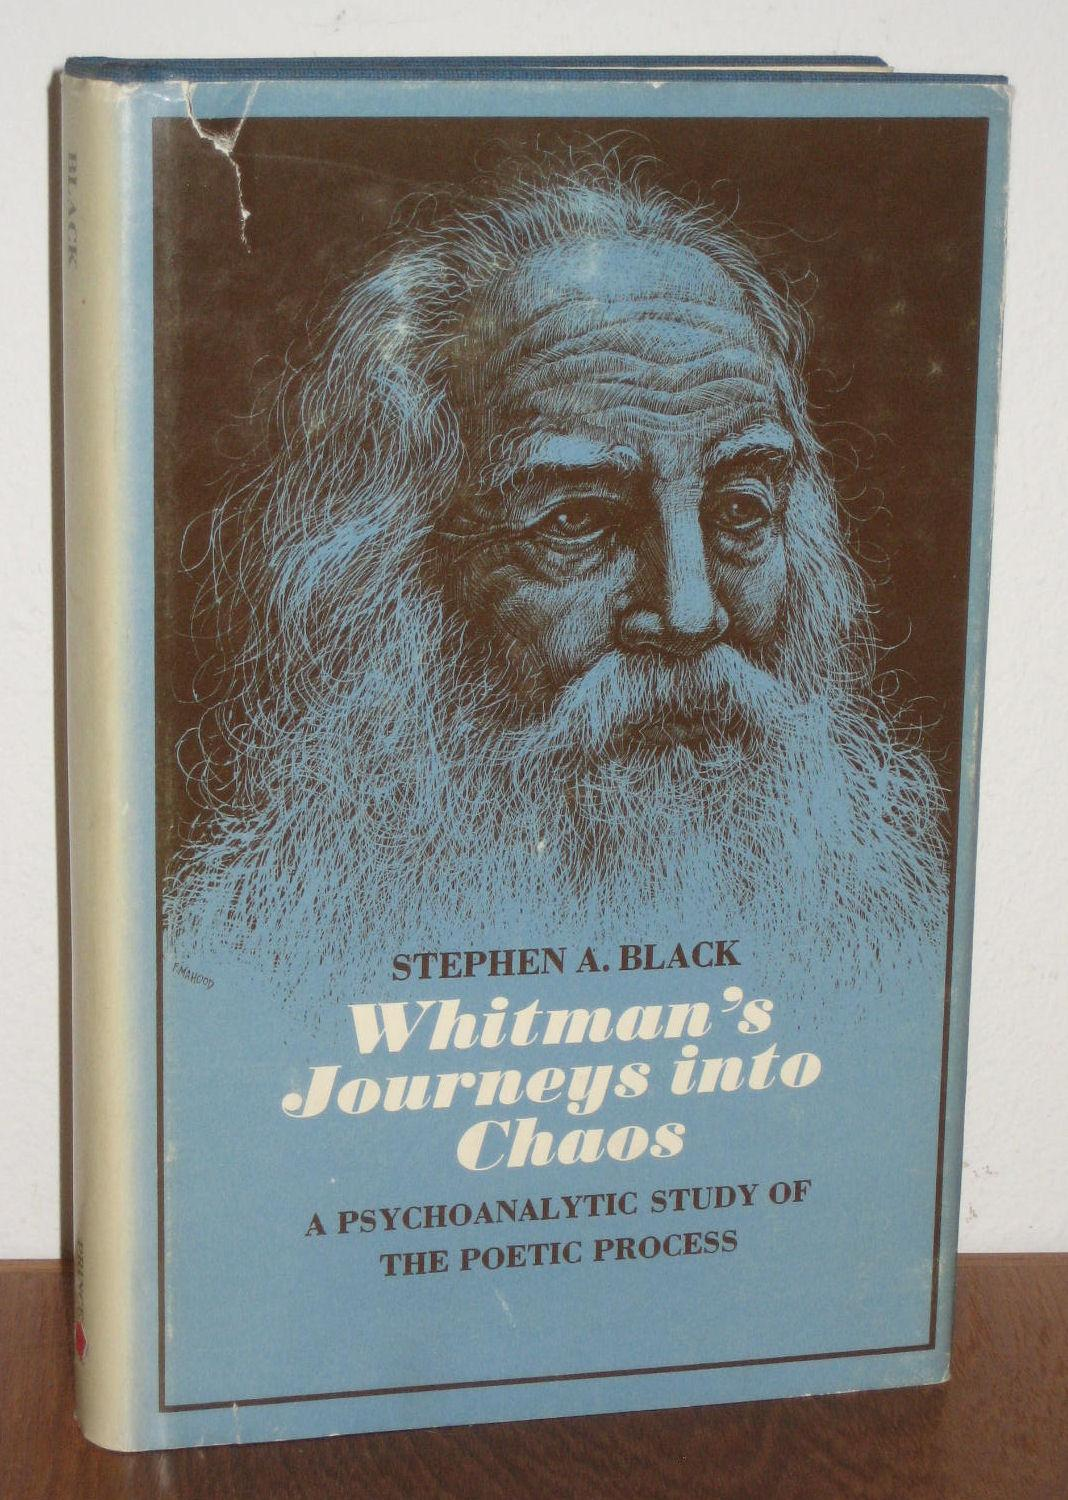 Whitman's journeys into chaos: A psychoanalytic study of the poetic process